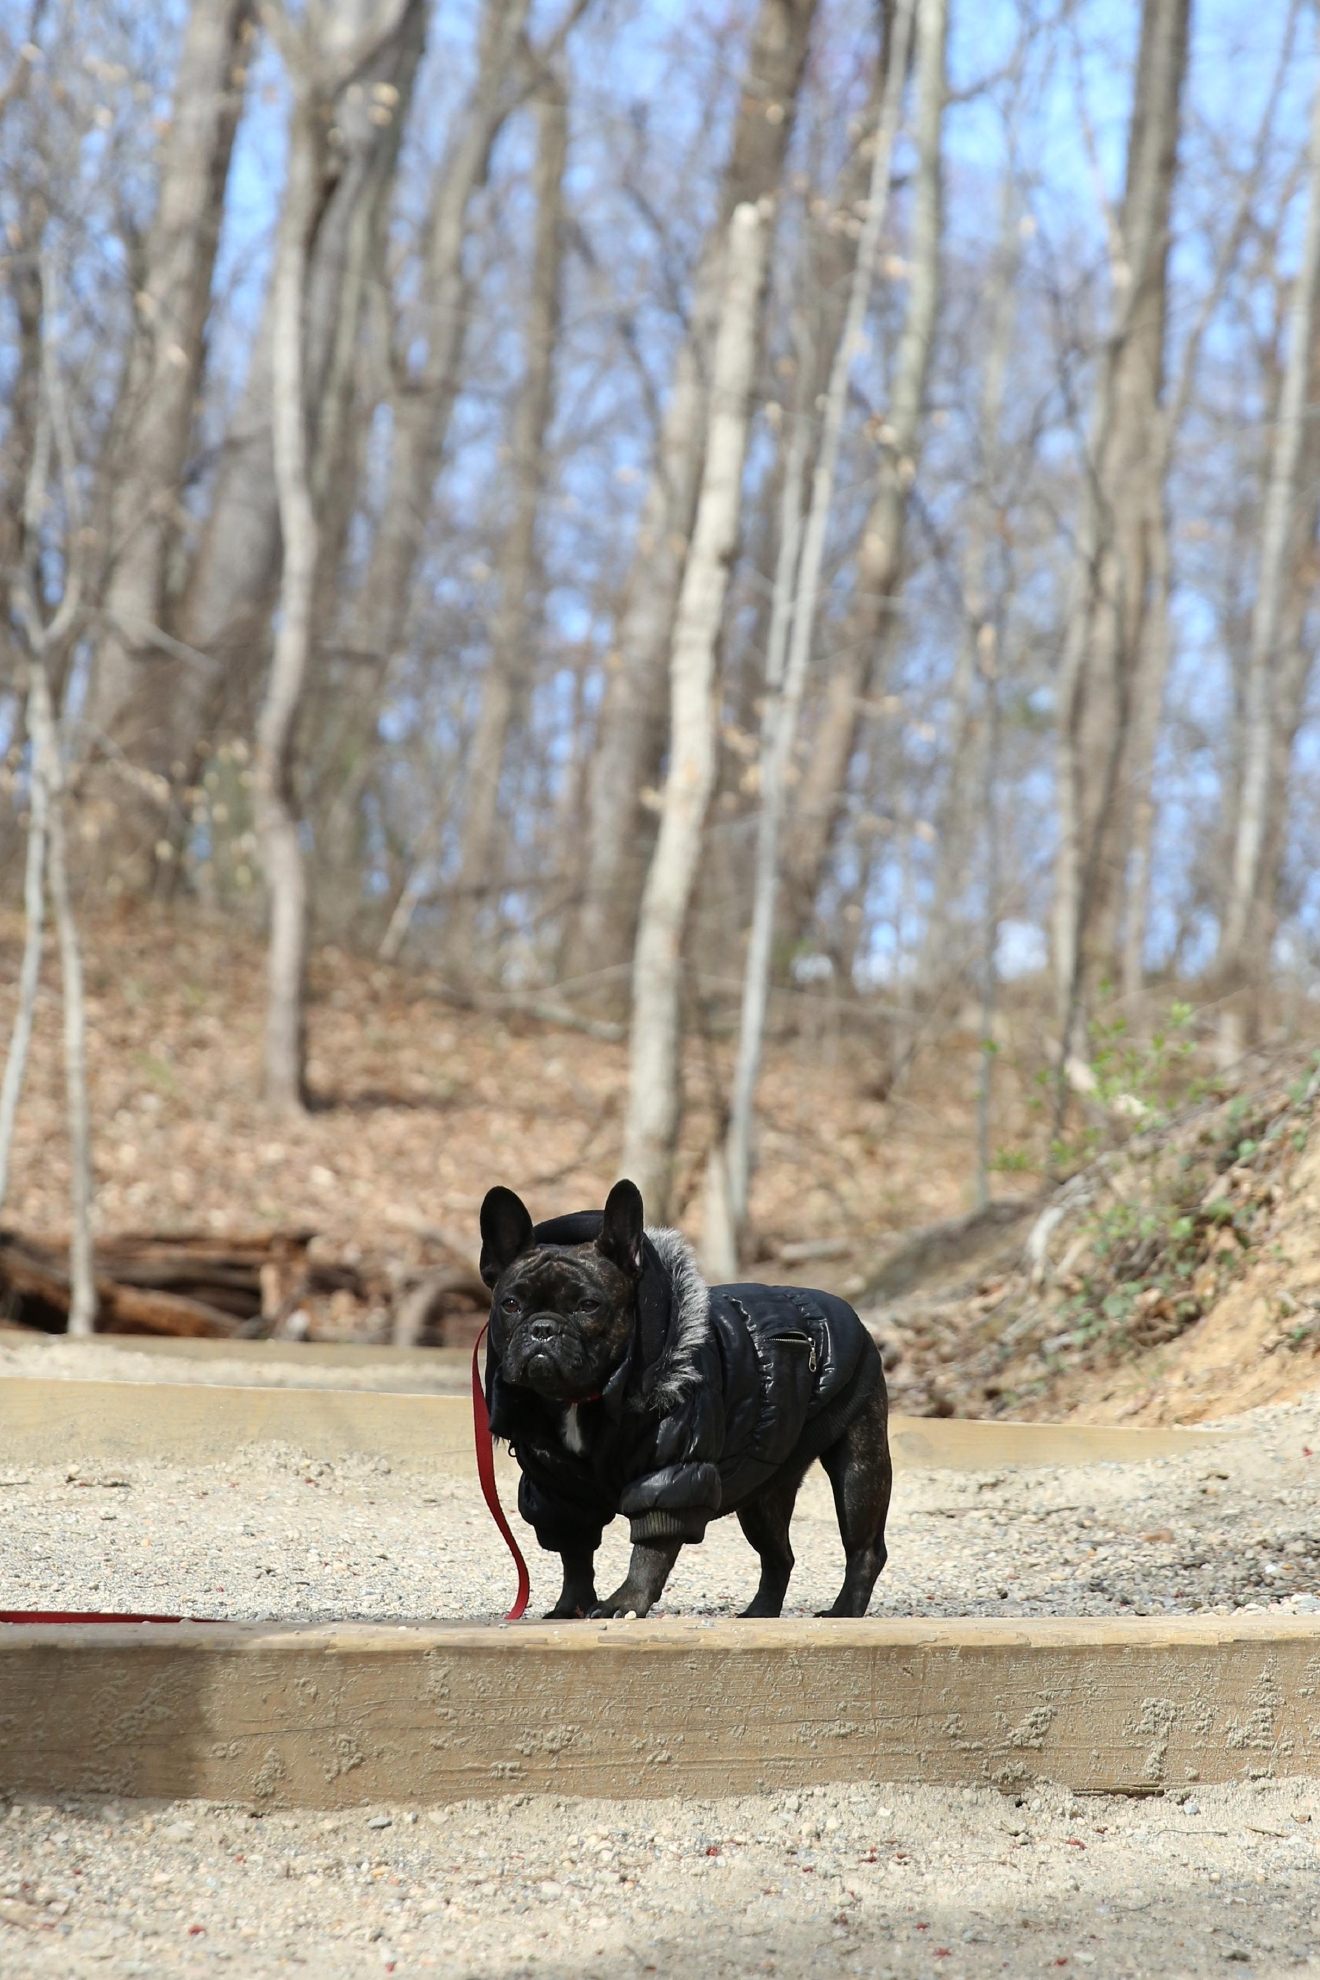 Meet Andouille, a 1.5-year-old French Bulldog, who hails from the Eastern Shore of Maryland. She has become the unofficial mascot of Shop Refine, and their employee of the year! Andouille loves people watching, anything that breaths, ice cubes and being chased. But she is most definitely not a fan of swimming, boats and the large statutes around McLean Gardens. Andi has taken to burrowing underneath the covers and can be really hard to catch unless you have a treat in hand! If you or someone you know has a pet you'd like featured, email us at dcrefined@gmail.com or tag #DCRUFFined and your furbaby could be the next spotlighted! (Image: Amanda Andrade-Rhoades/ DC Refined)